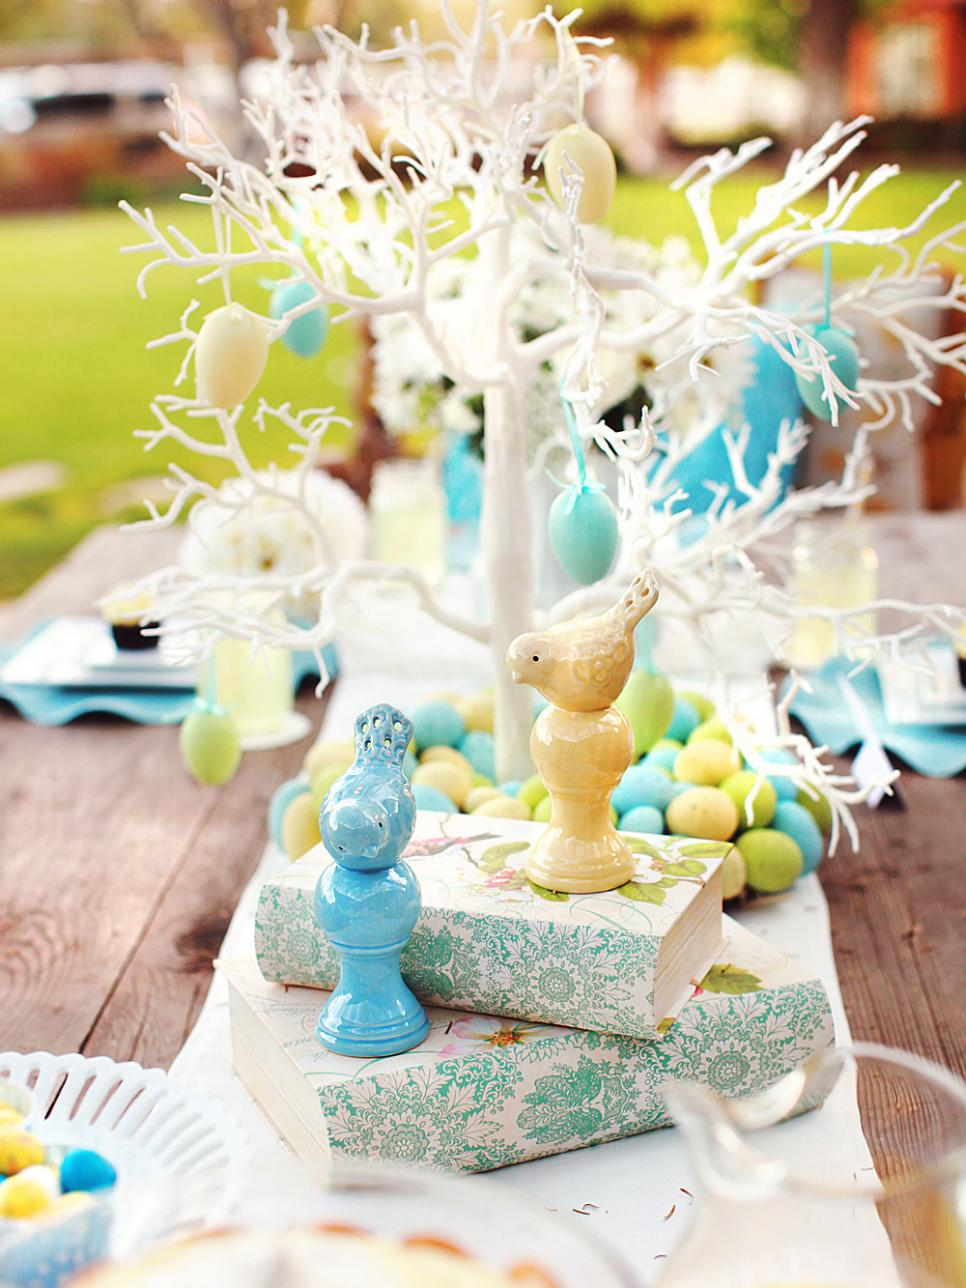 Best easter decoration ideas1